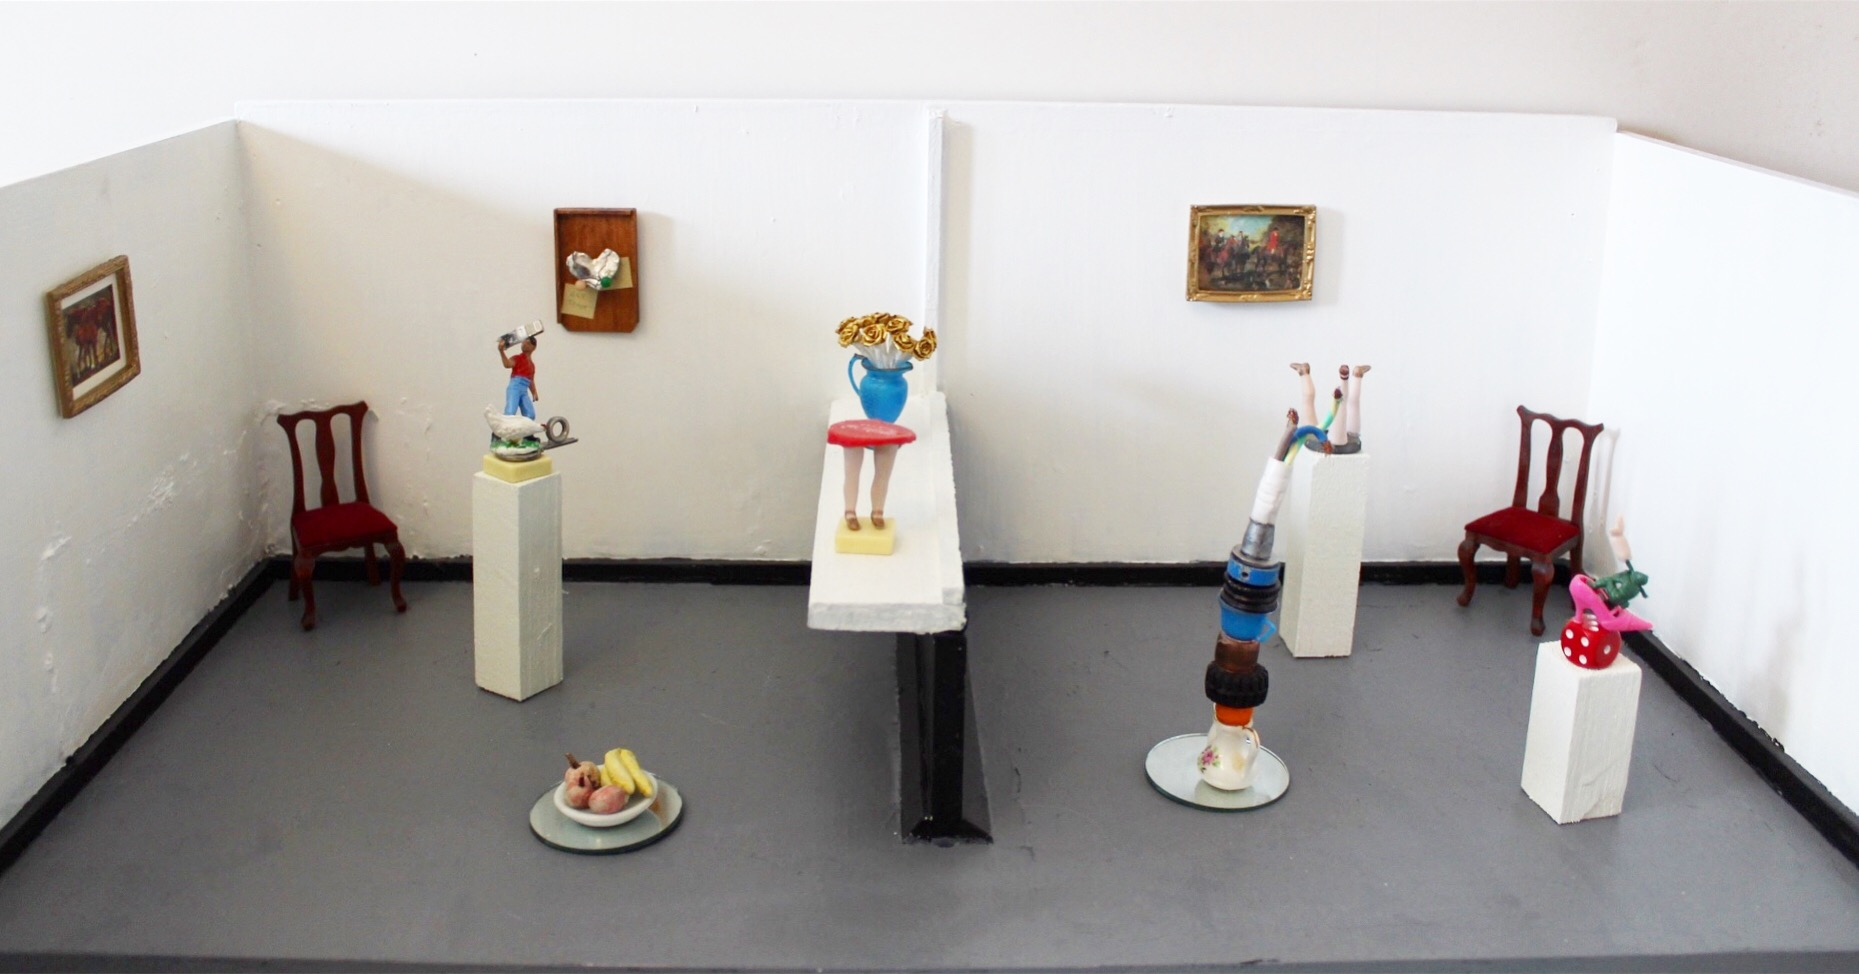 Open Call for submissions to Miniature Art Gallery